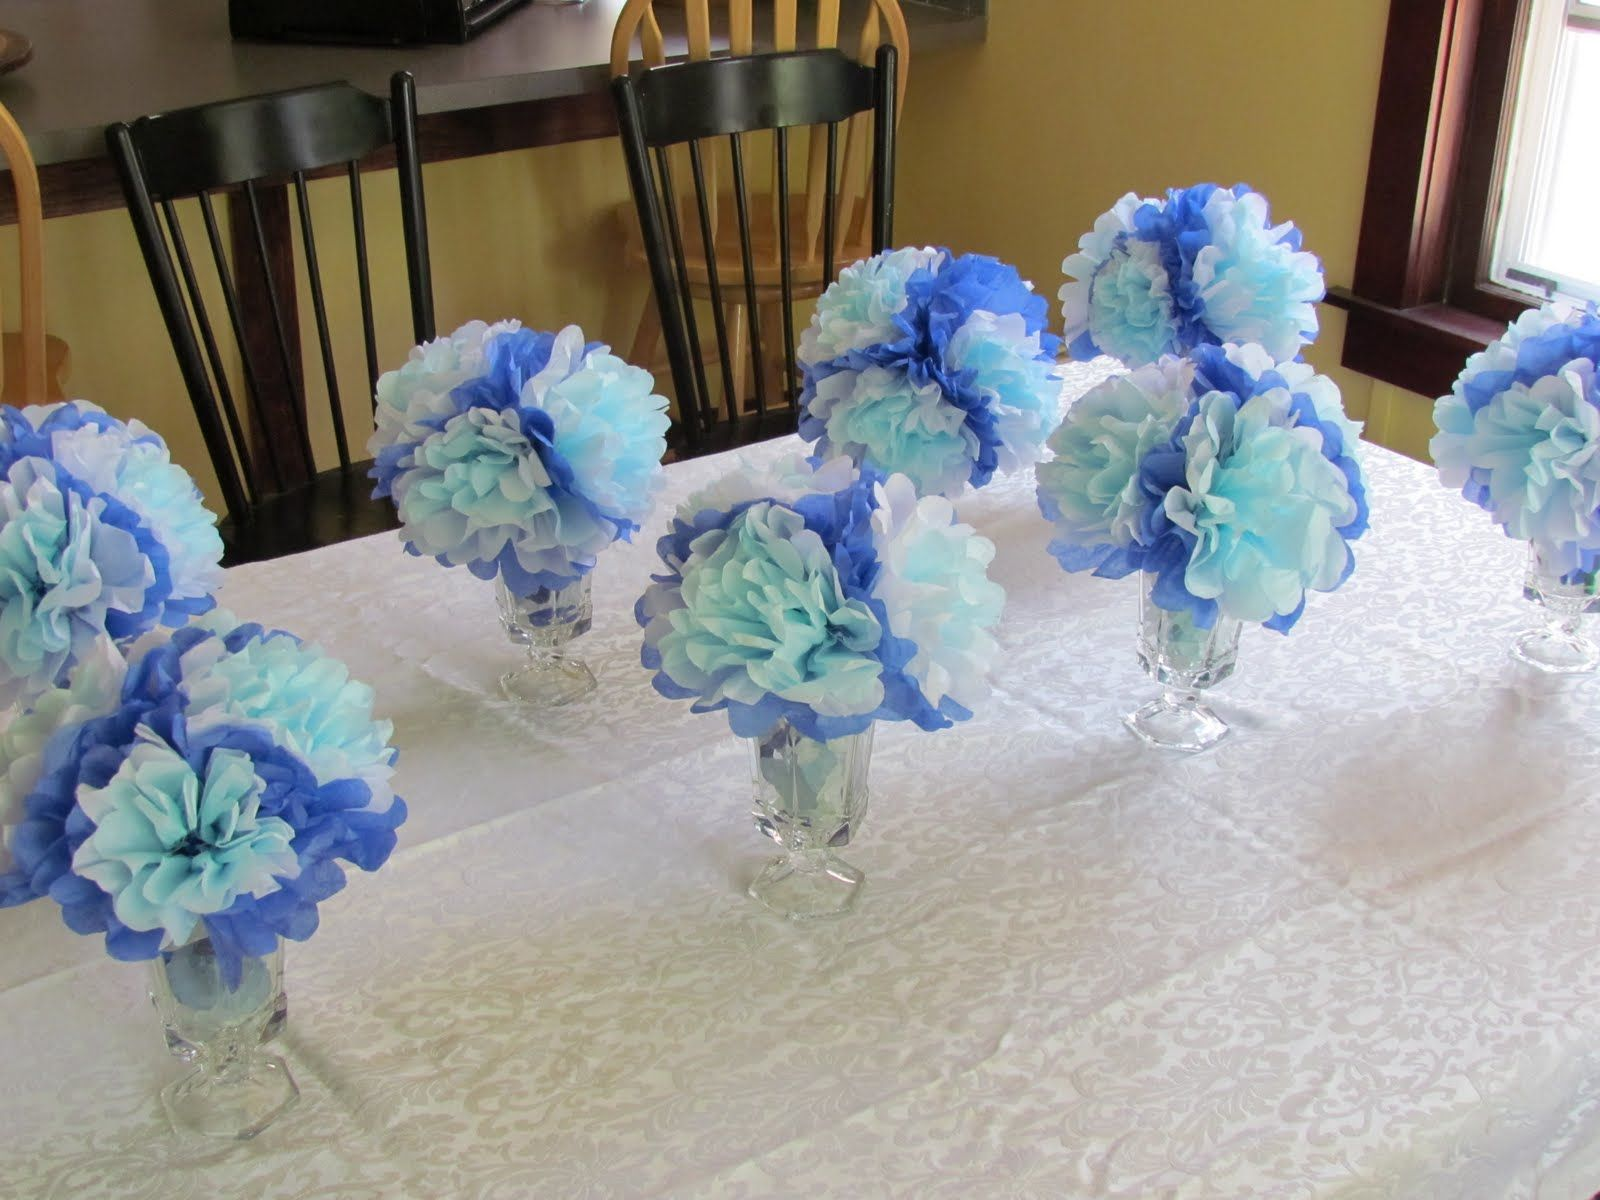 Cute Baby Shower Decorations Baby Shower Decorations For Girls 05 Baby Shower Pinterest